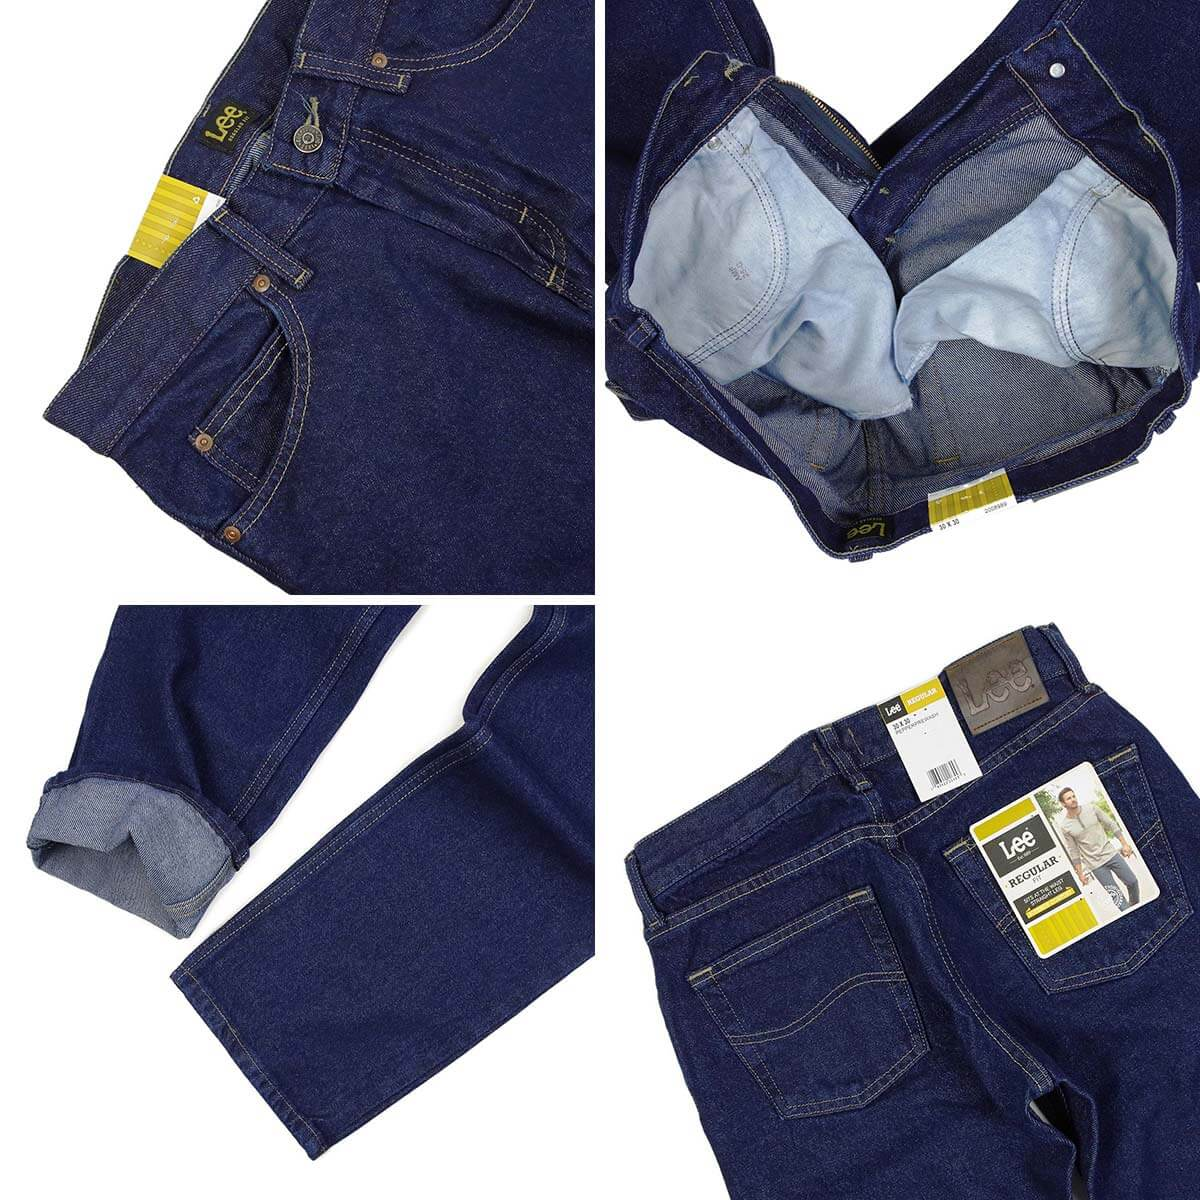 1ac396b3 ... Lee Lee #200 straight jeans pepper pre-wash □ hemming for free □ ...